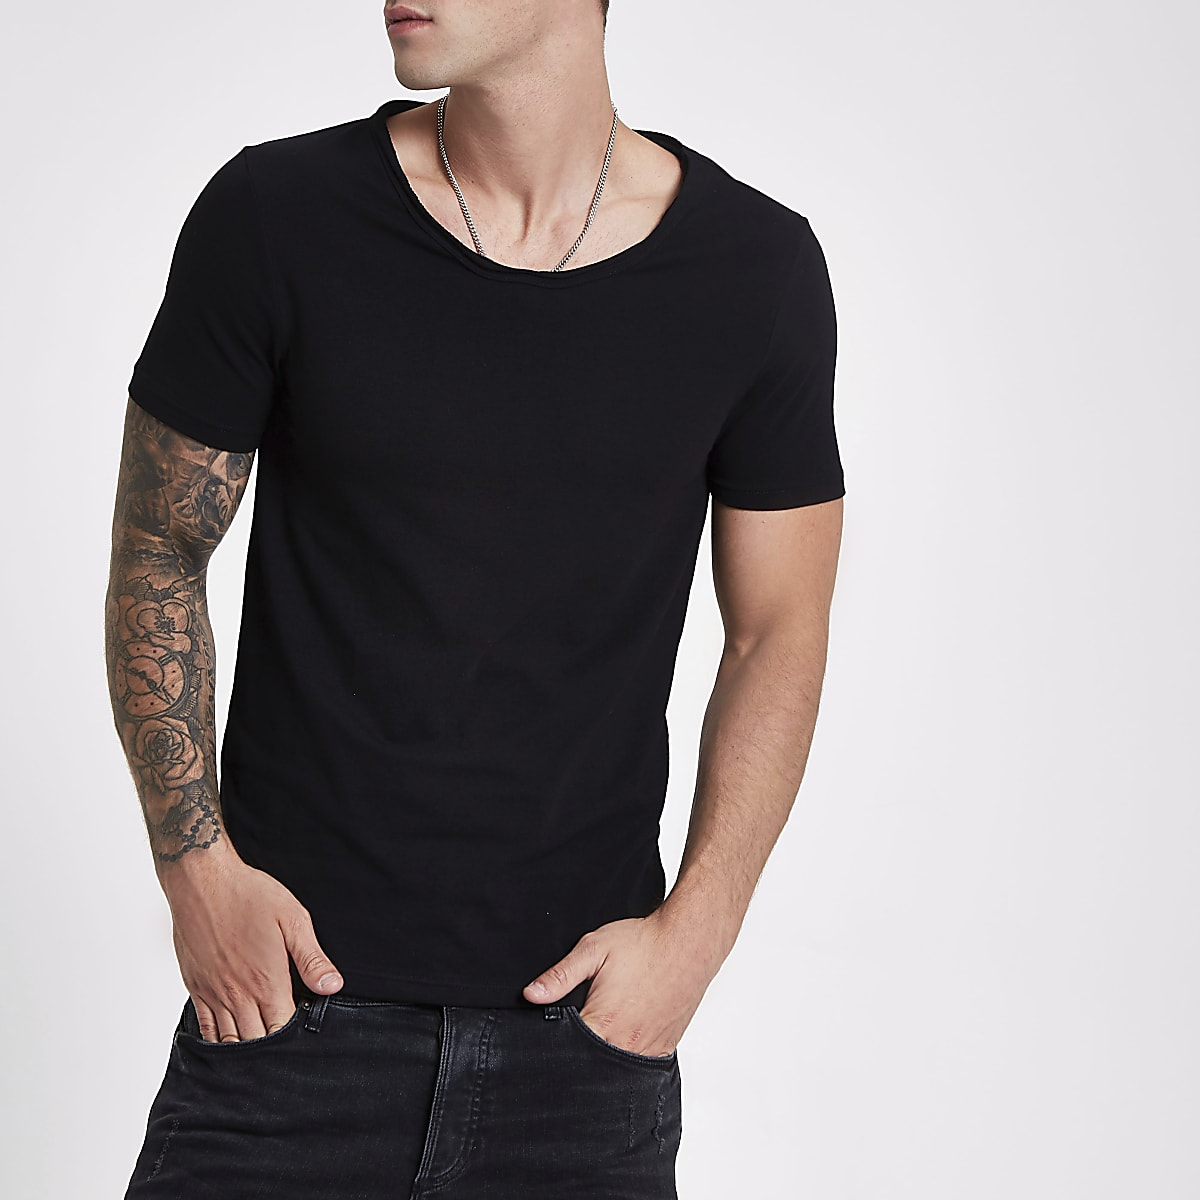 b63efa7a Black muscle fit scoop neck T-shirt - T-shirts - T-Shirts & Vests - men